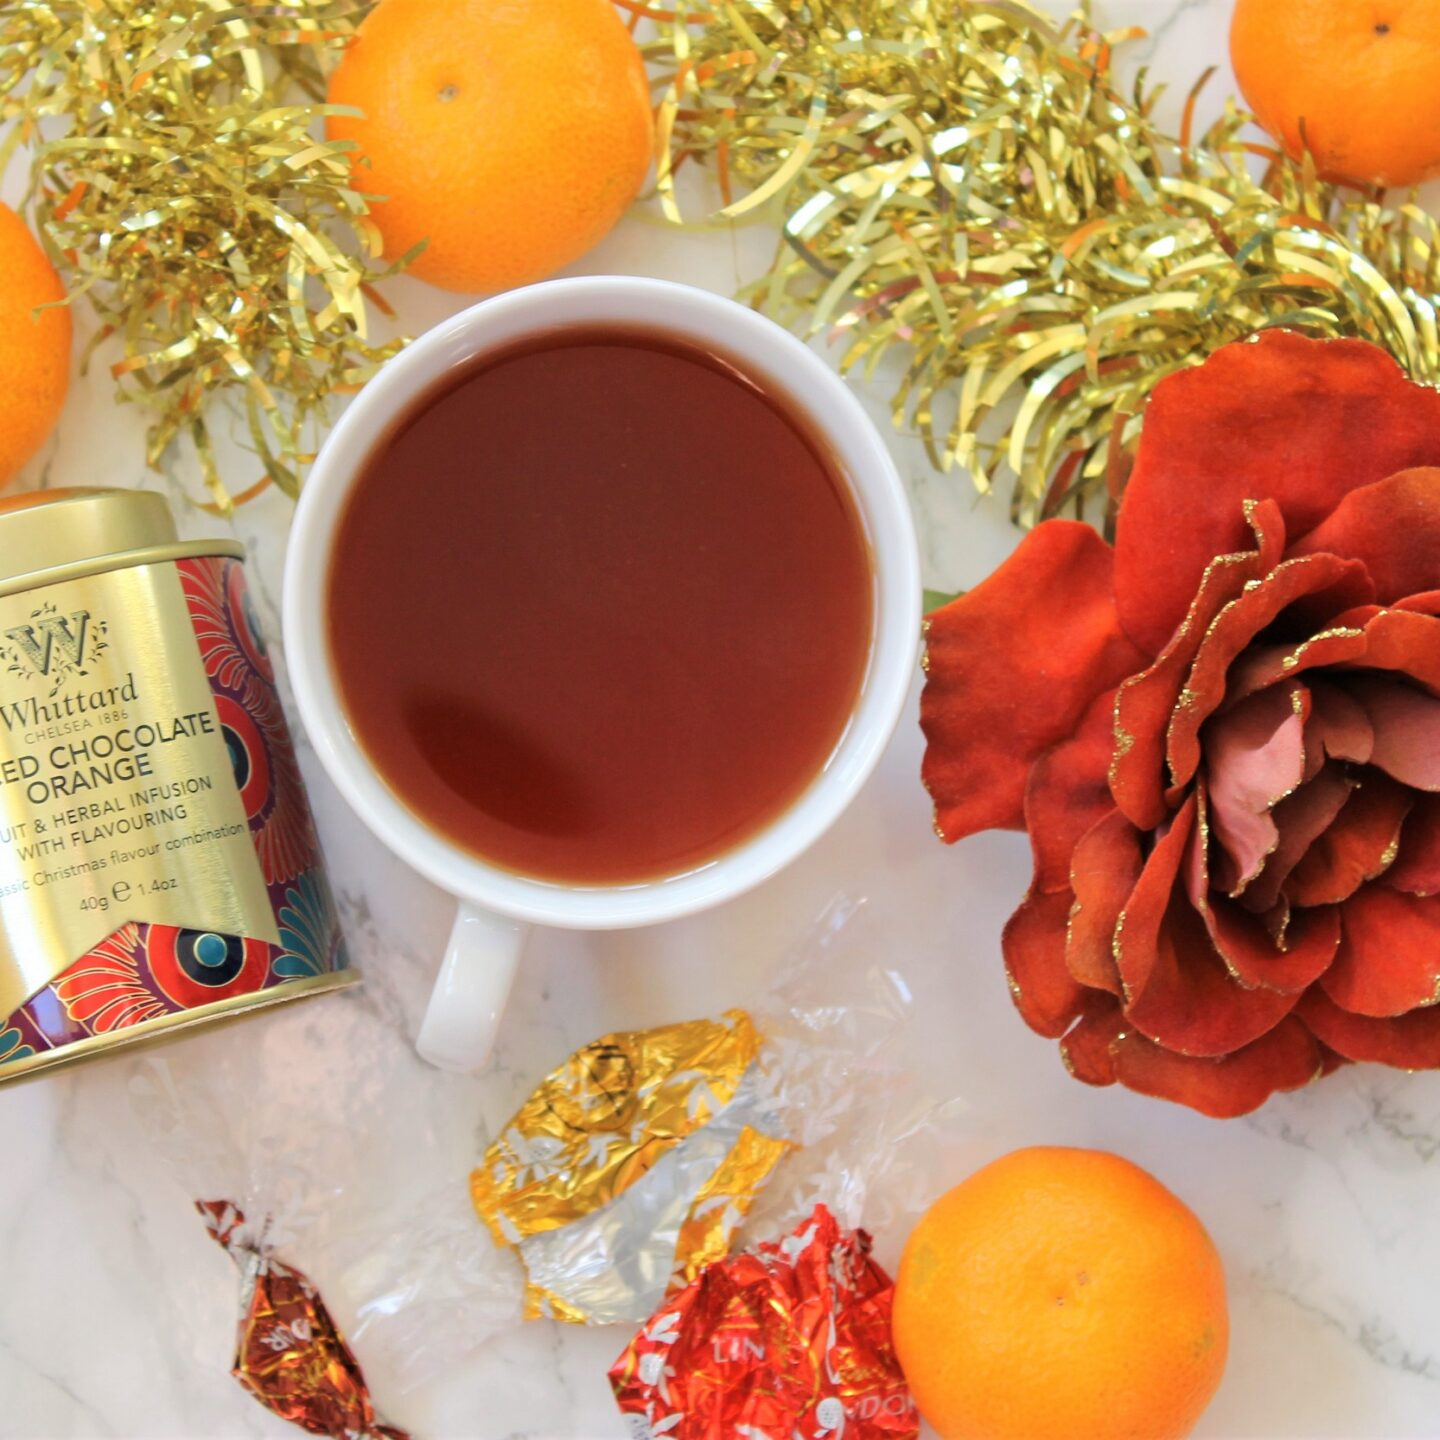 Whittard Spiced Chocolate Orange Tea Review